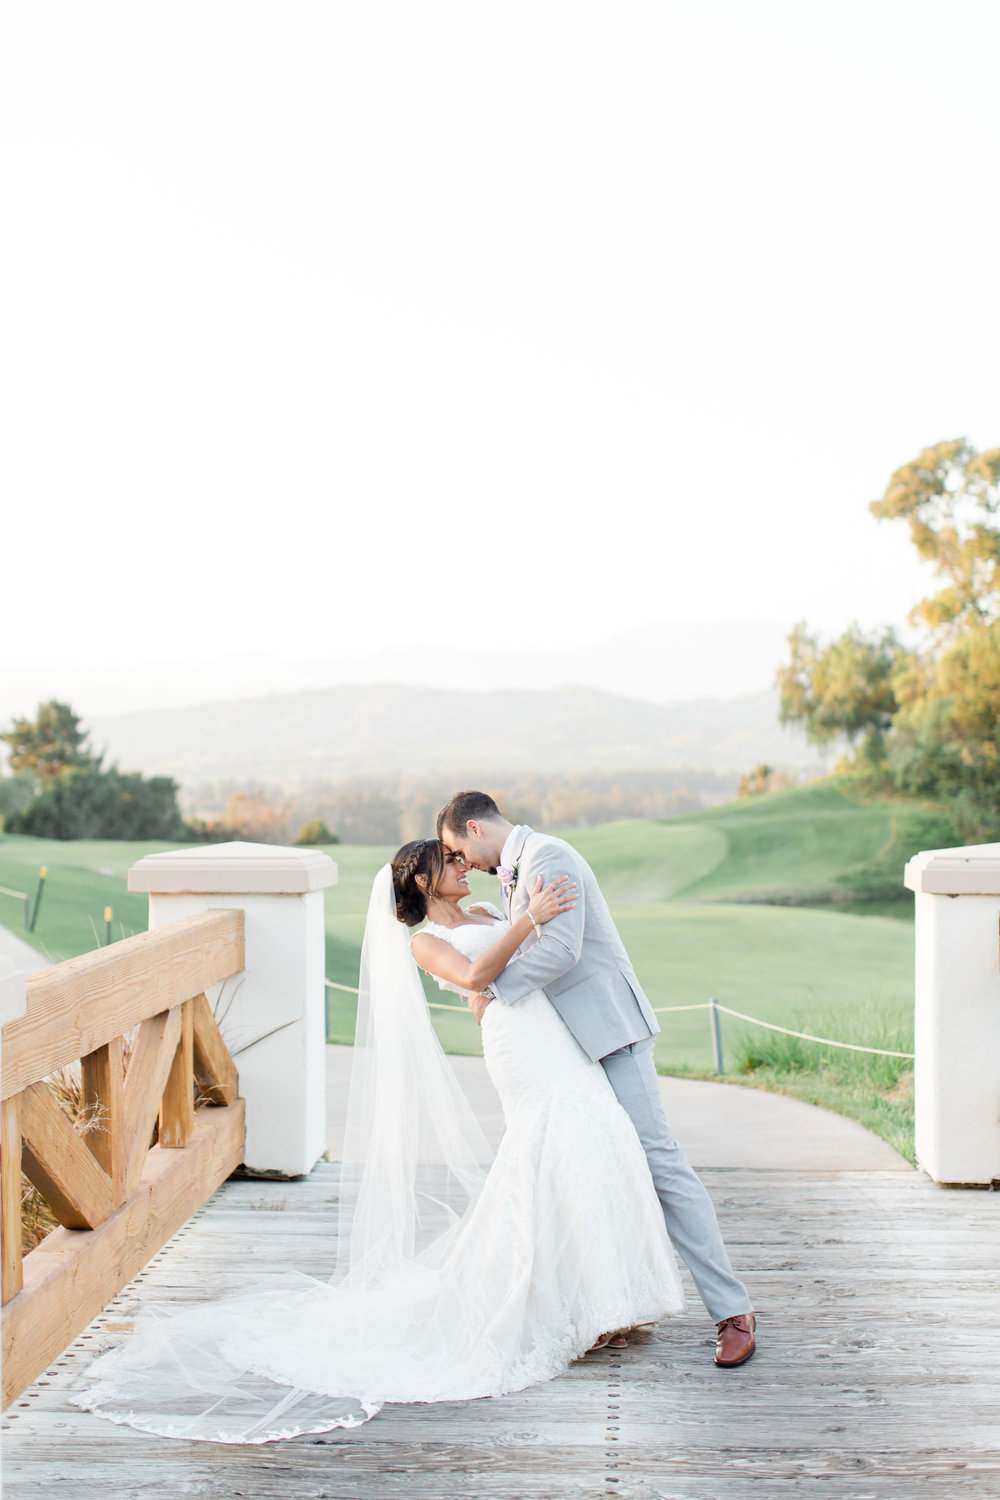 AngelicaMariePhotography_AlvarezWedding_SpanishHillsCountryClub_VenturaCountyWeddingPhotographer_740.JPG